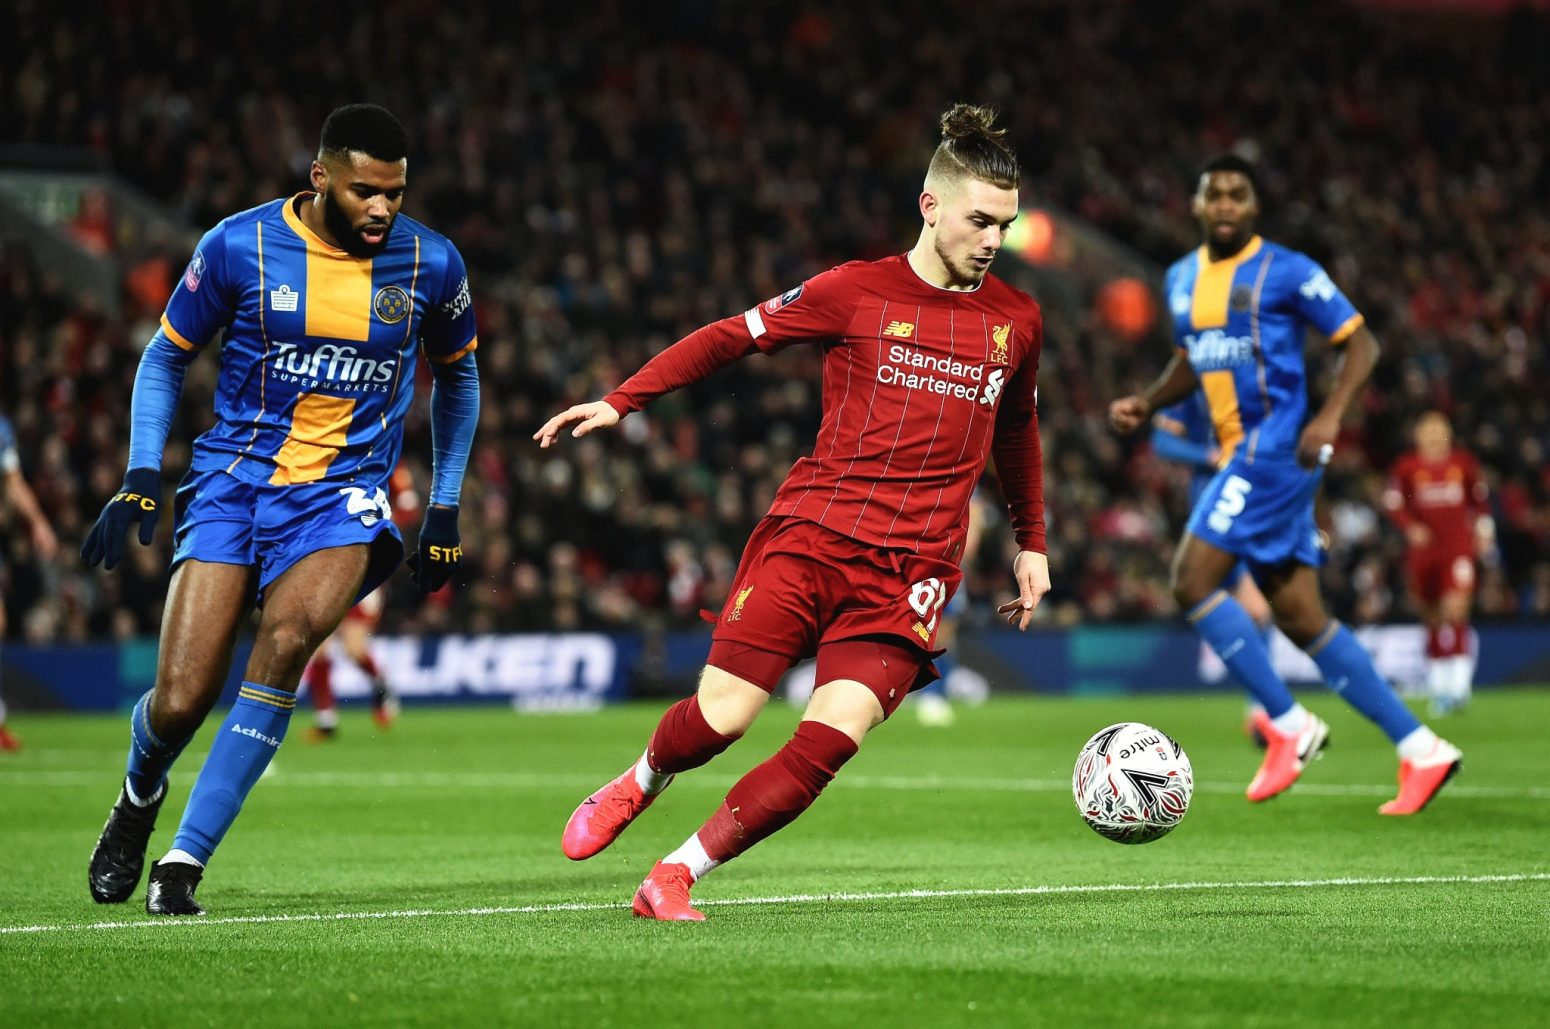 Liverpool 1-0 Shrewsbury Town: As it happened & reaction